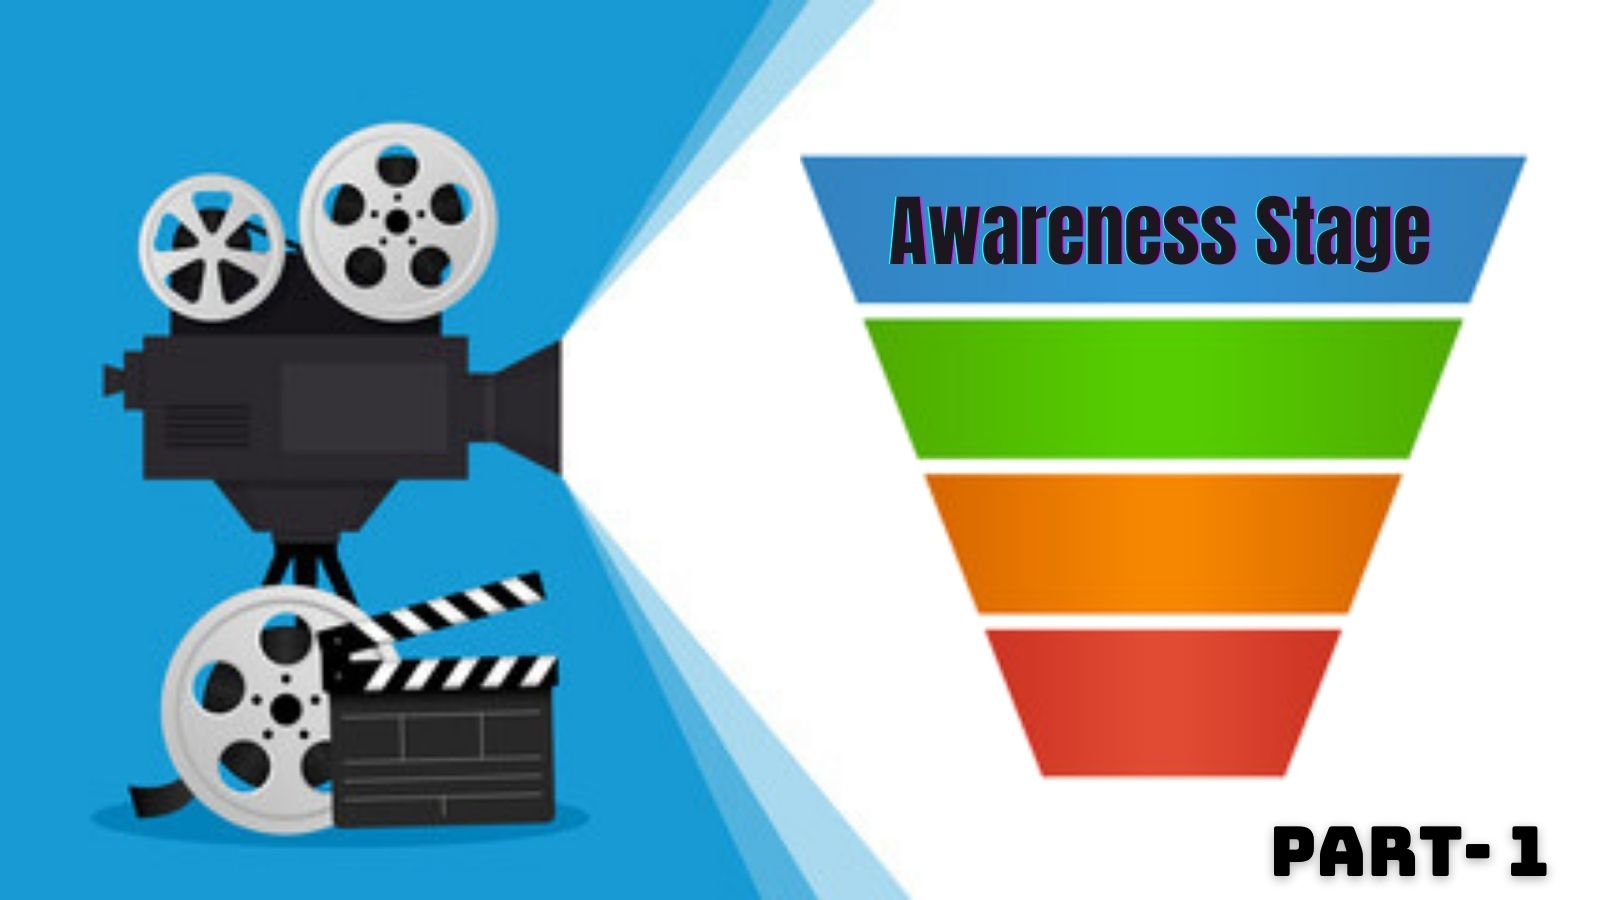 Videos and the Marketing Funnel Part- 1